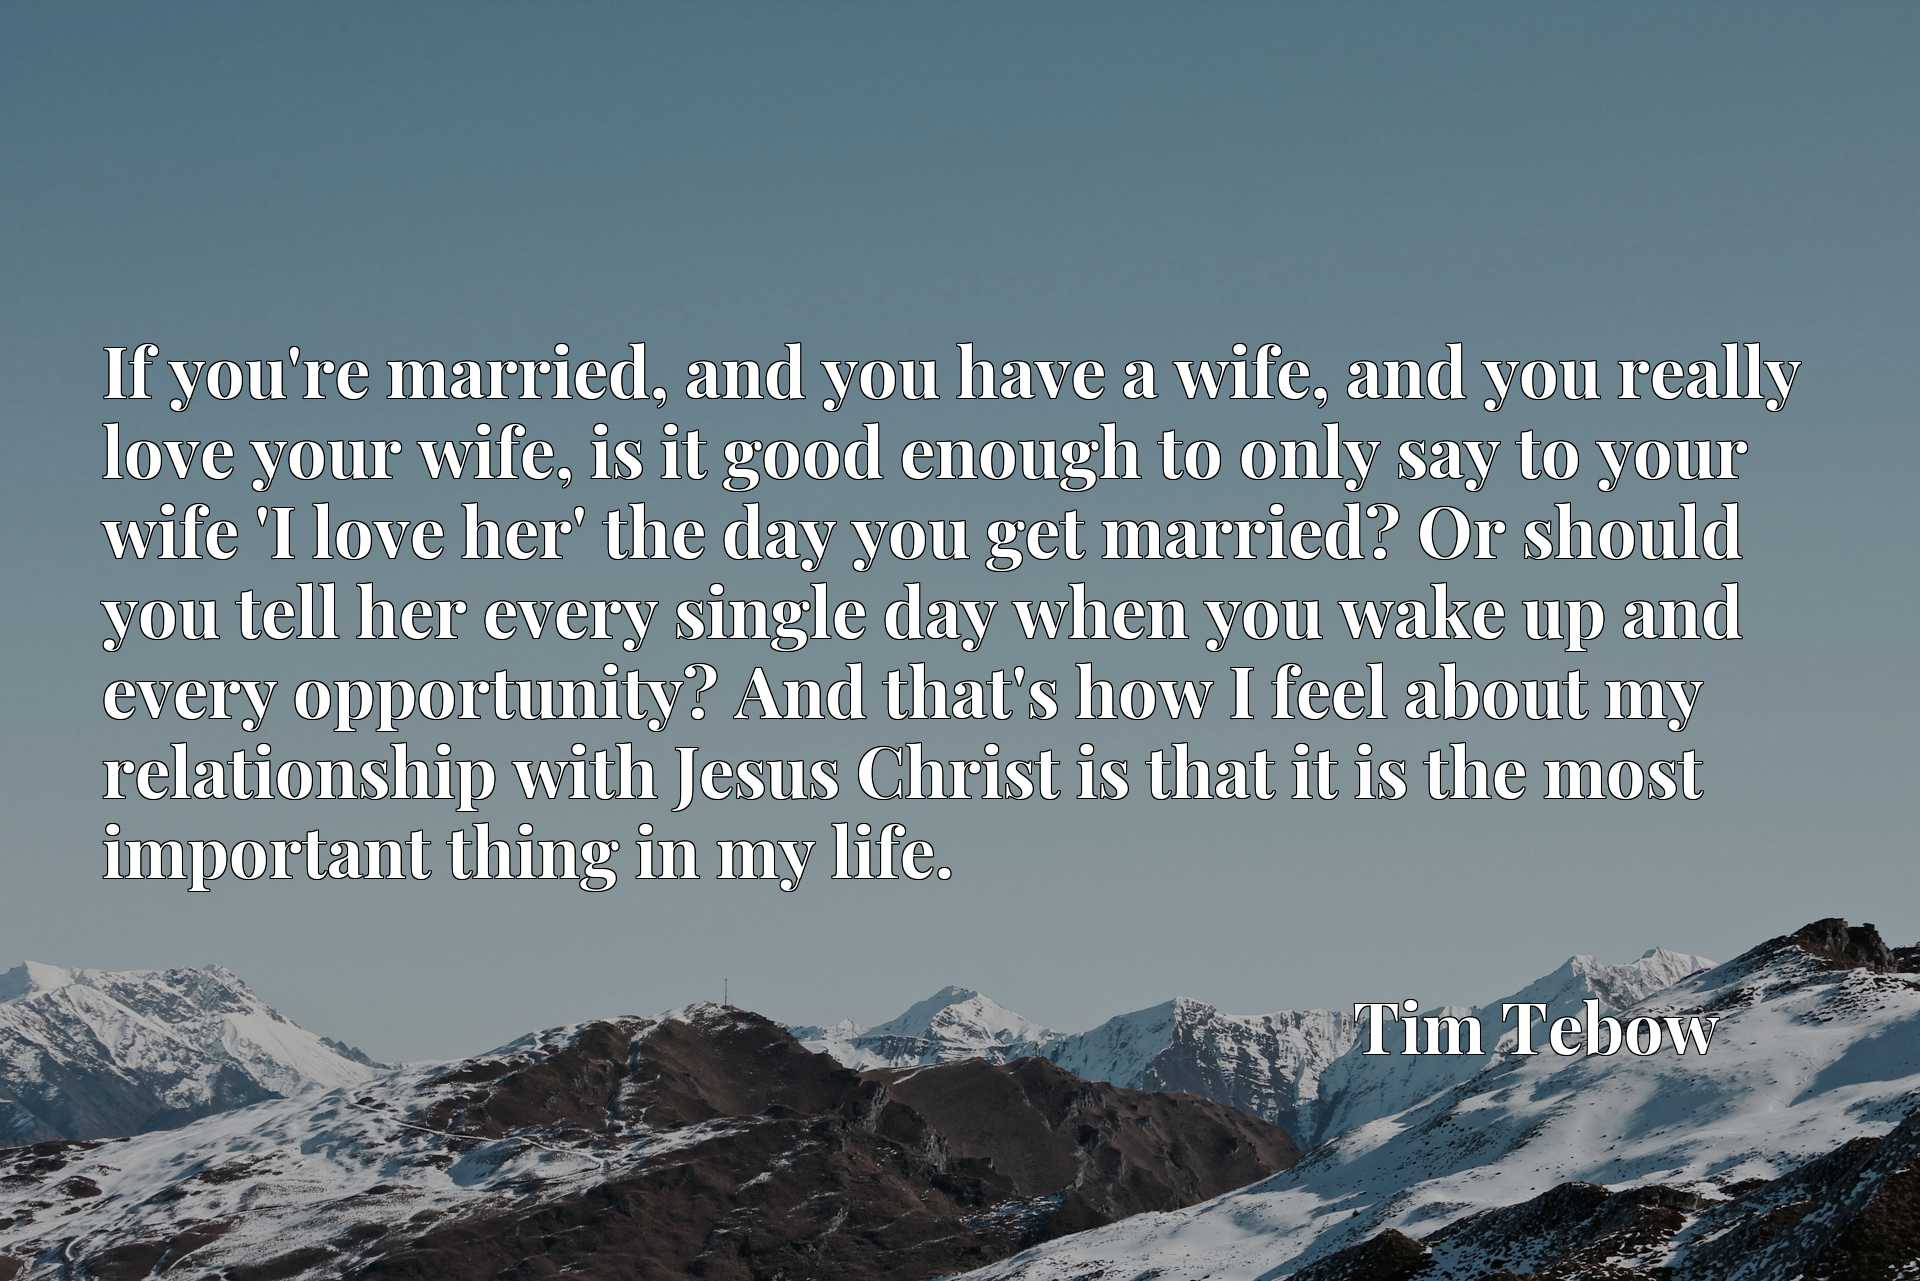 If you're married, and you have a wife, and you really love your wife, is it good enough to only say to your wife 'I love her' the day you get married? Or should you tell her every single day when you wake up and every opportunity? And that's how I feel about my relationship with Jesus Christ is that it is the most important thing in my life.